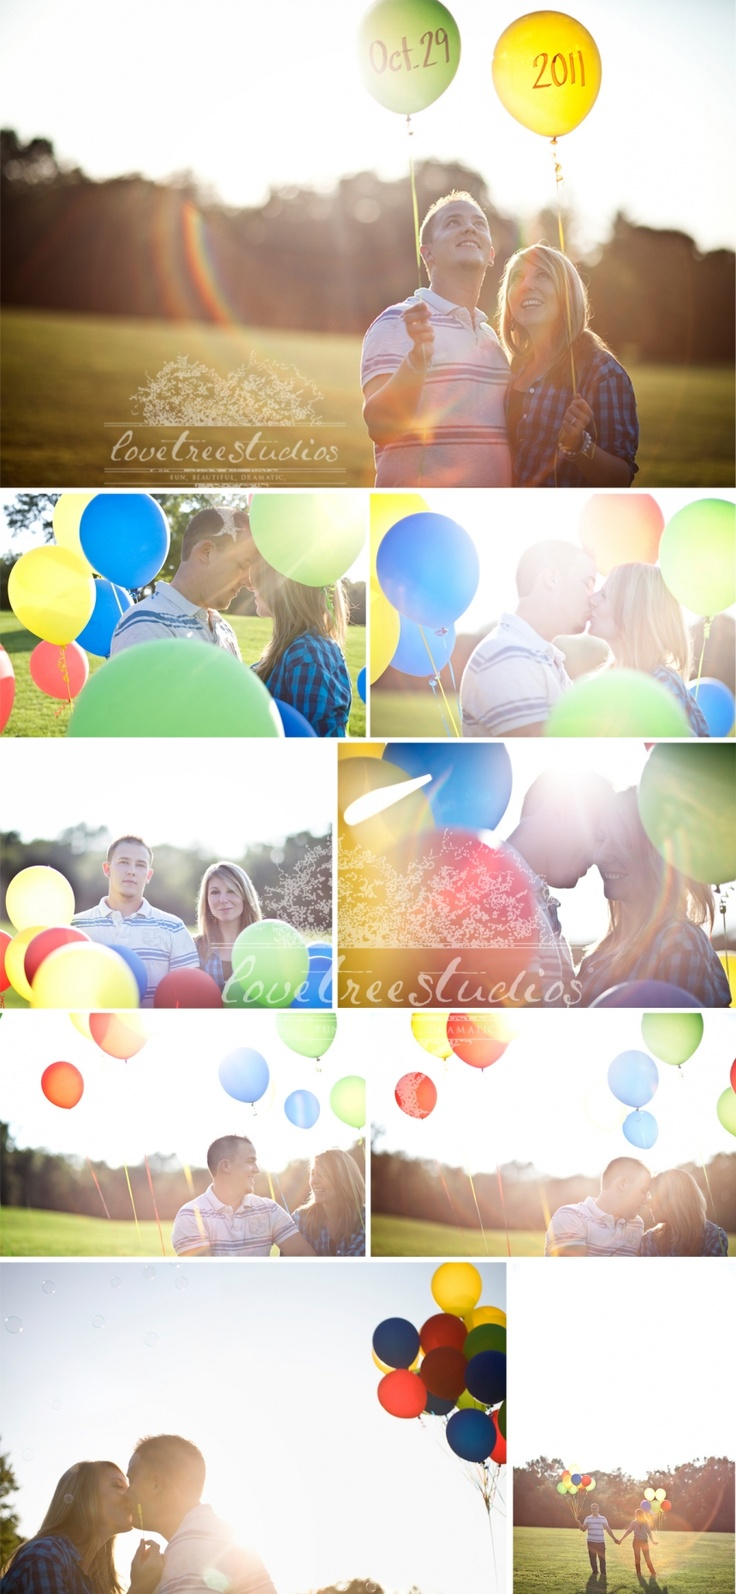 We love this save the date balloons photo shoot. Be sure to include balloons in your wedding photos too